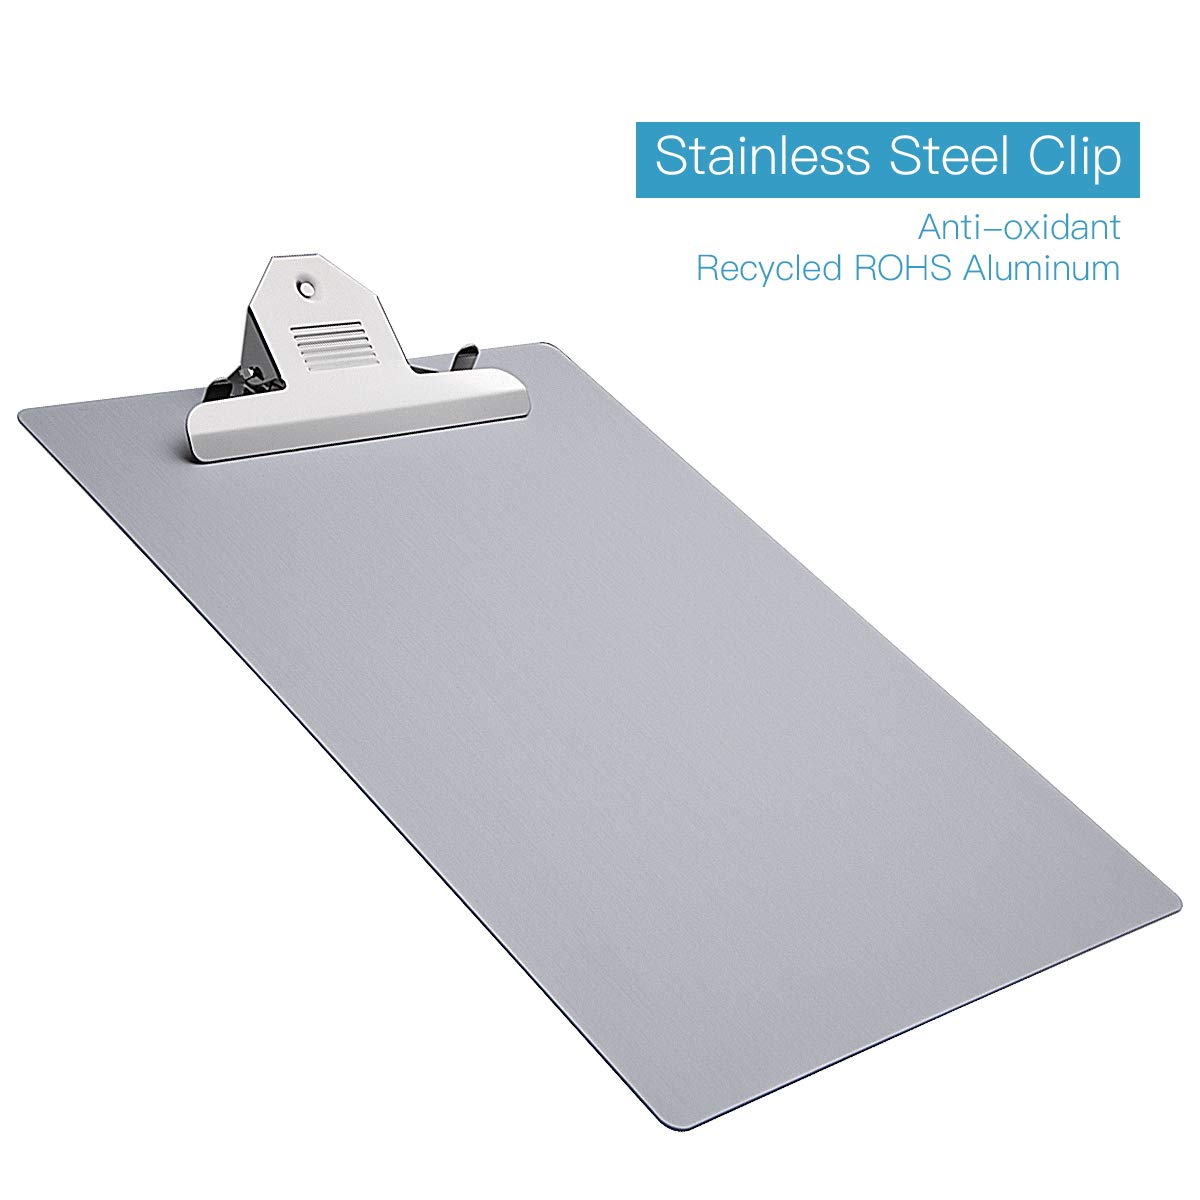 Aluminum Clipboard, Aluekey Metal Clipboard Paper Holder 9×12.6 Inches Letter Size File A4 Recycled Aluminum Holder for Office Business Steel clipboard